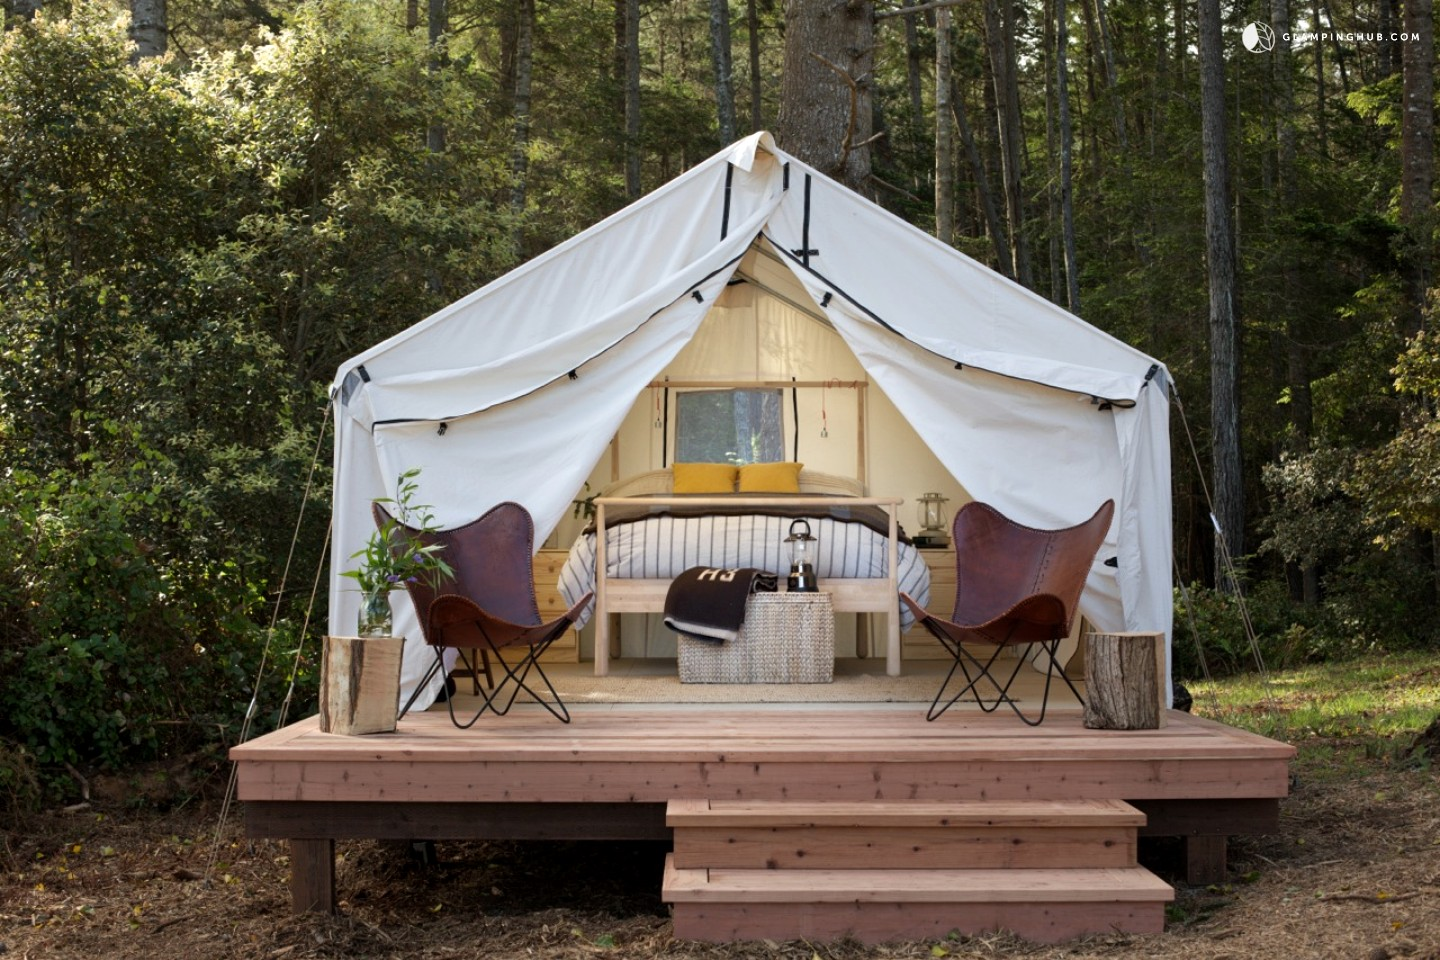 Peaceful Safari Tent C&ing in Coastal Woodlands & Peaceful Safari Tent Camping in Coastal Woodlands : Hopaway Holiday ...